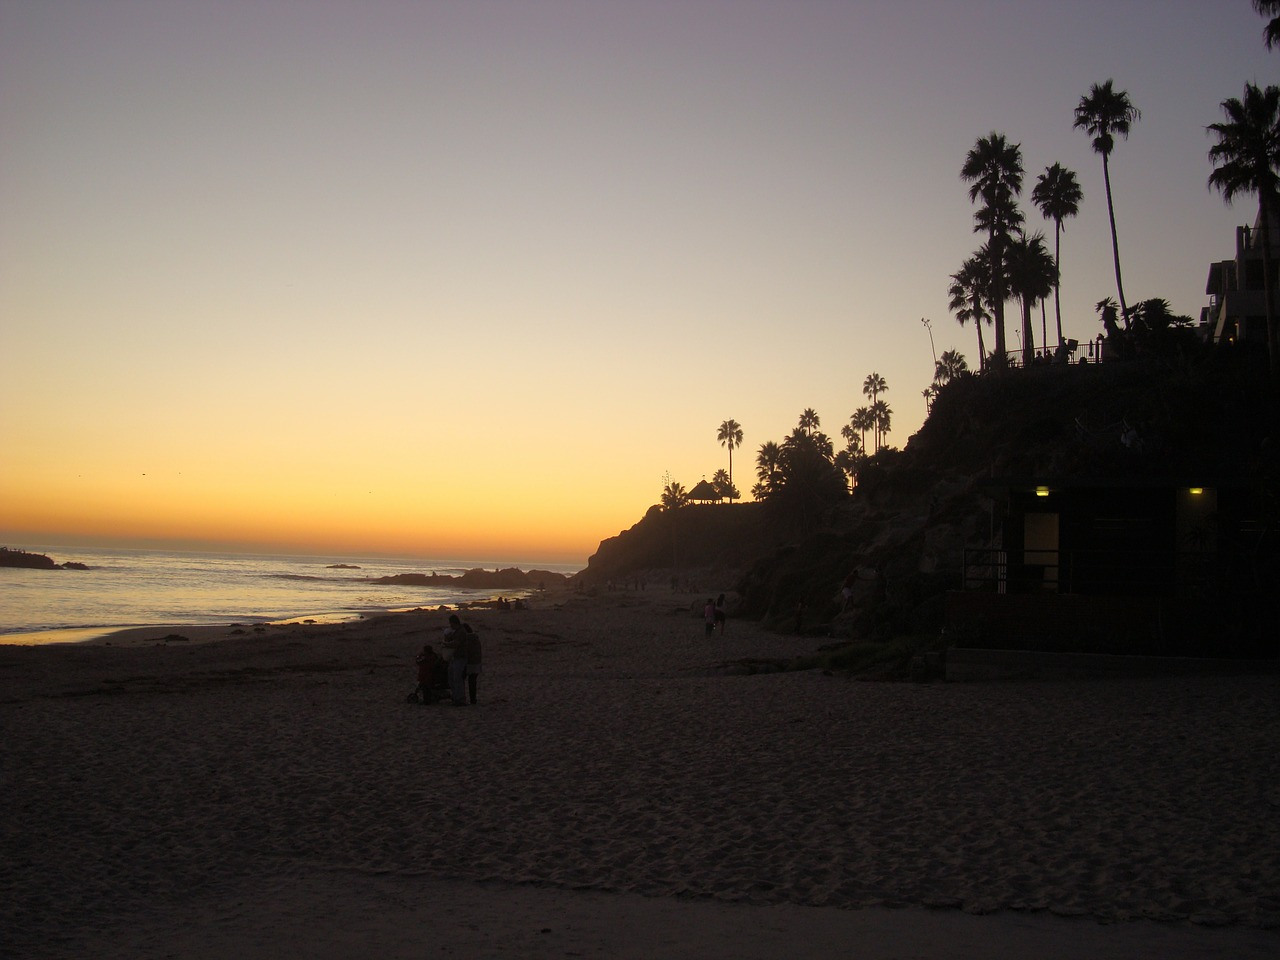 laguna beach sunset.jpg